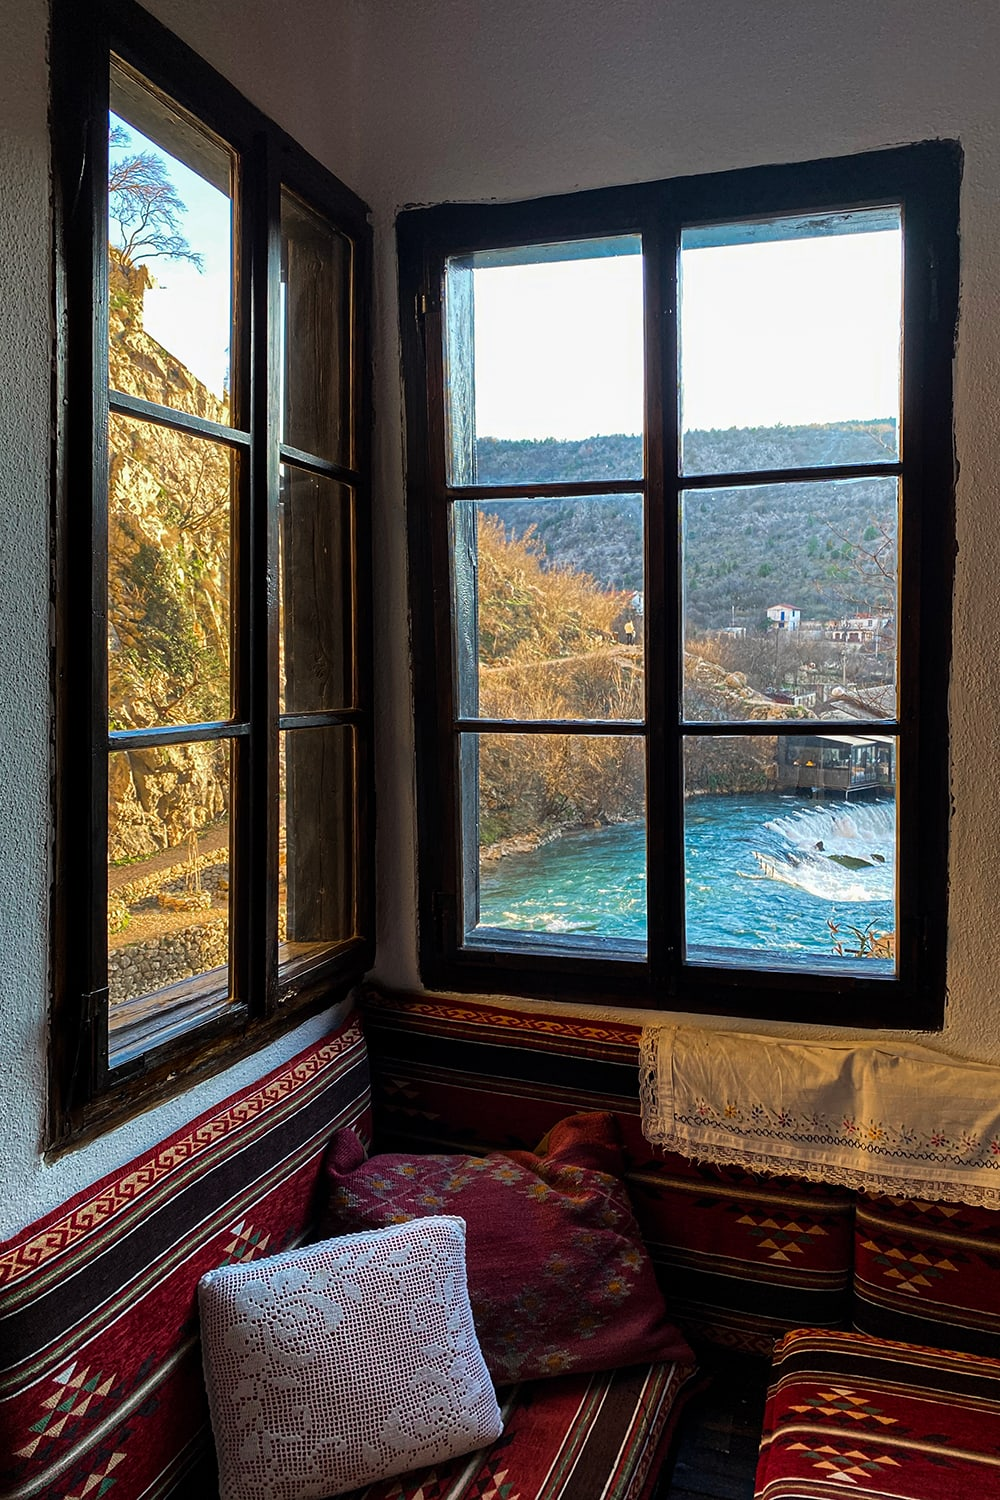 Blagaj - In the Holy Place of Love 14